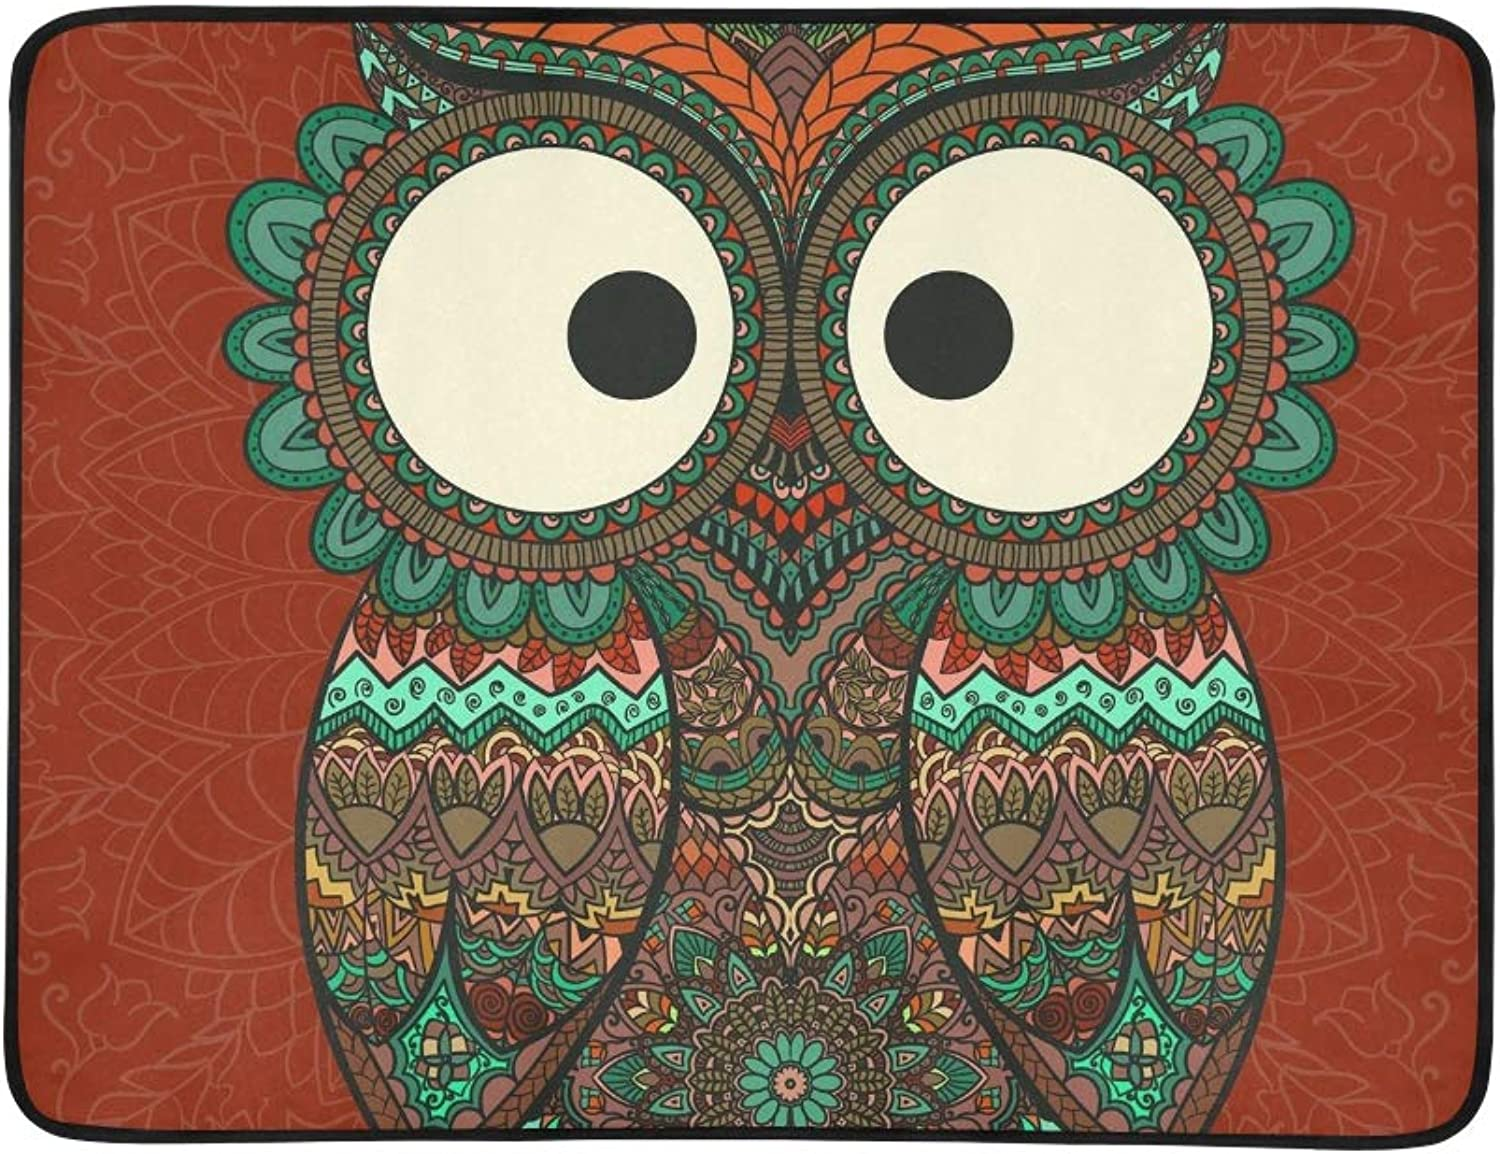 Boho Ornamental Owl Ethnics Abstract Portable and Foldable Blanket Mat 60x78 Inch Handy Mat for Camping Picnic Beach Indoor Outdoor Travel